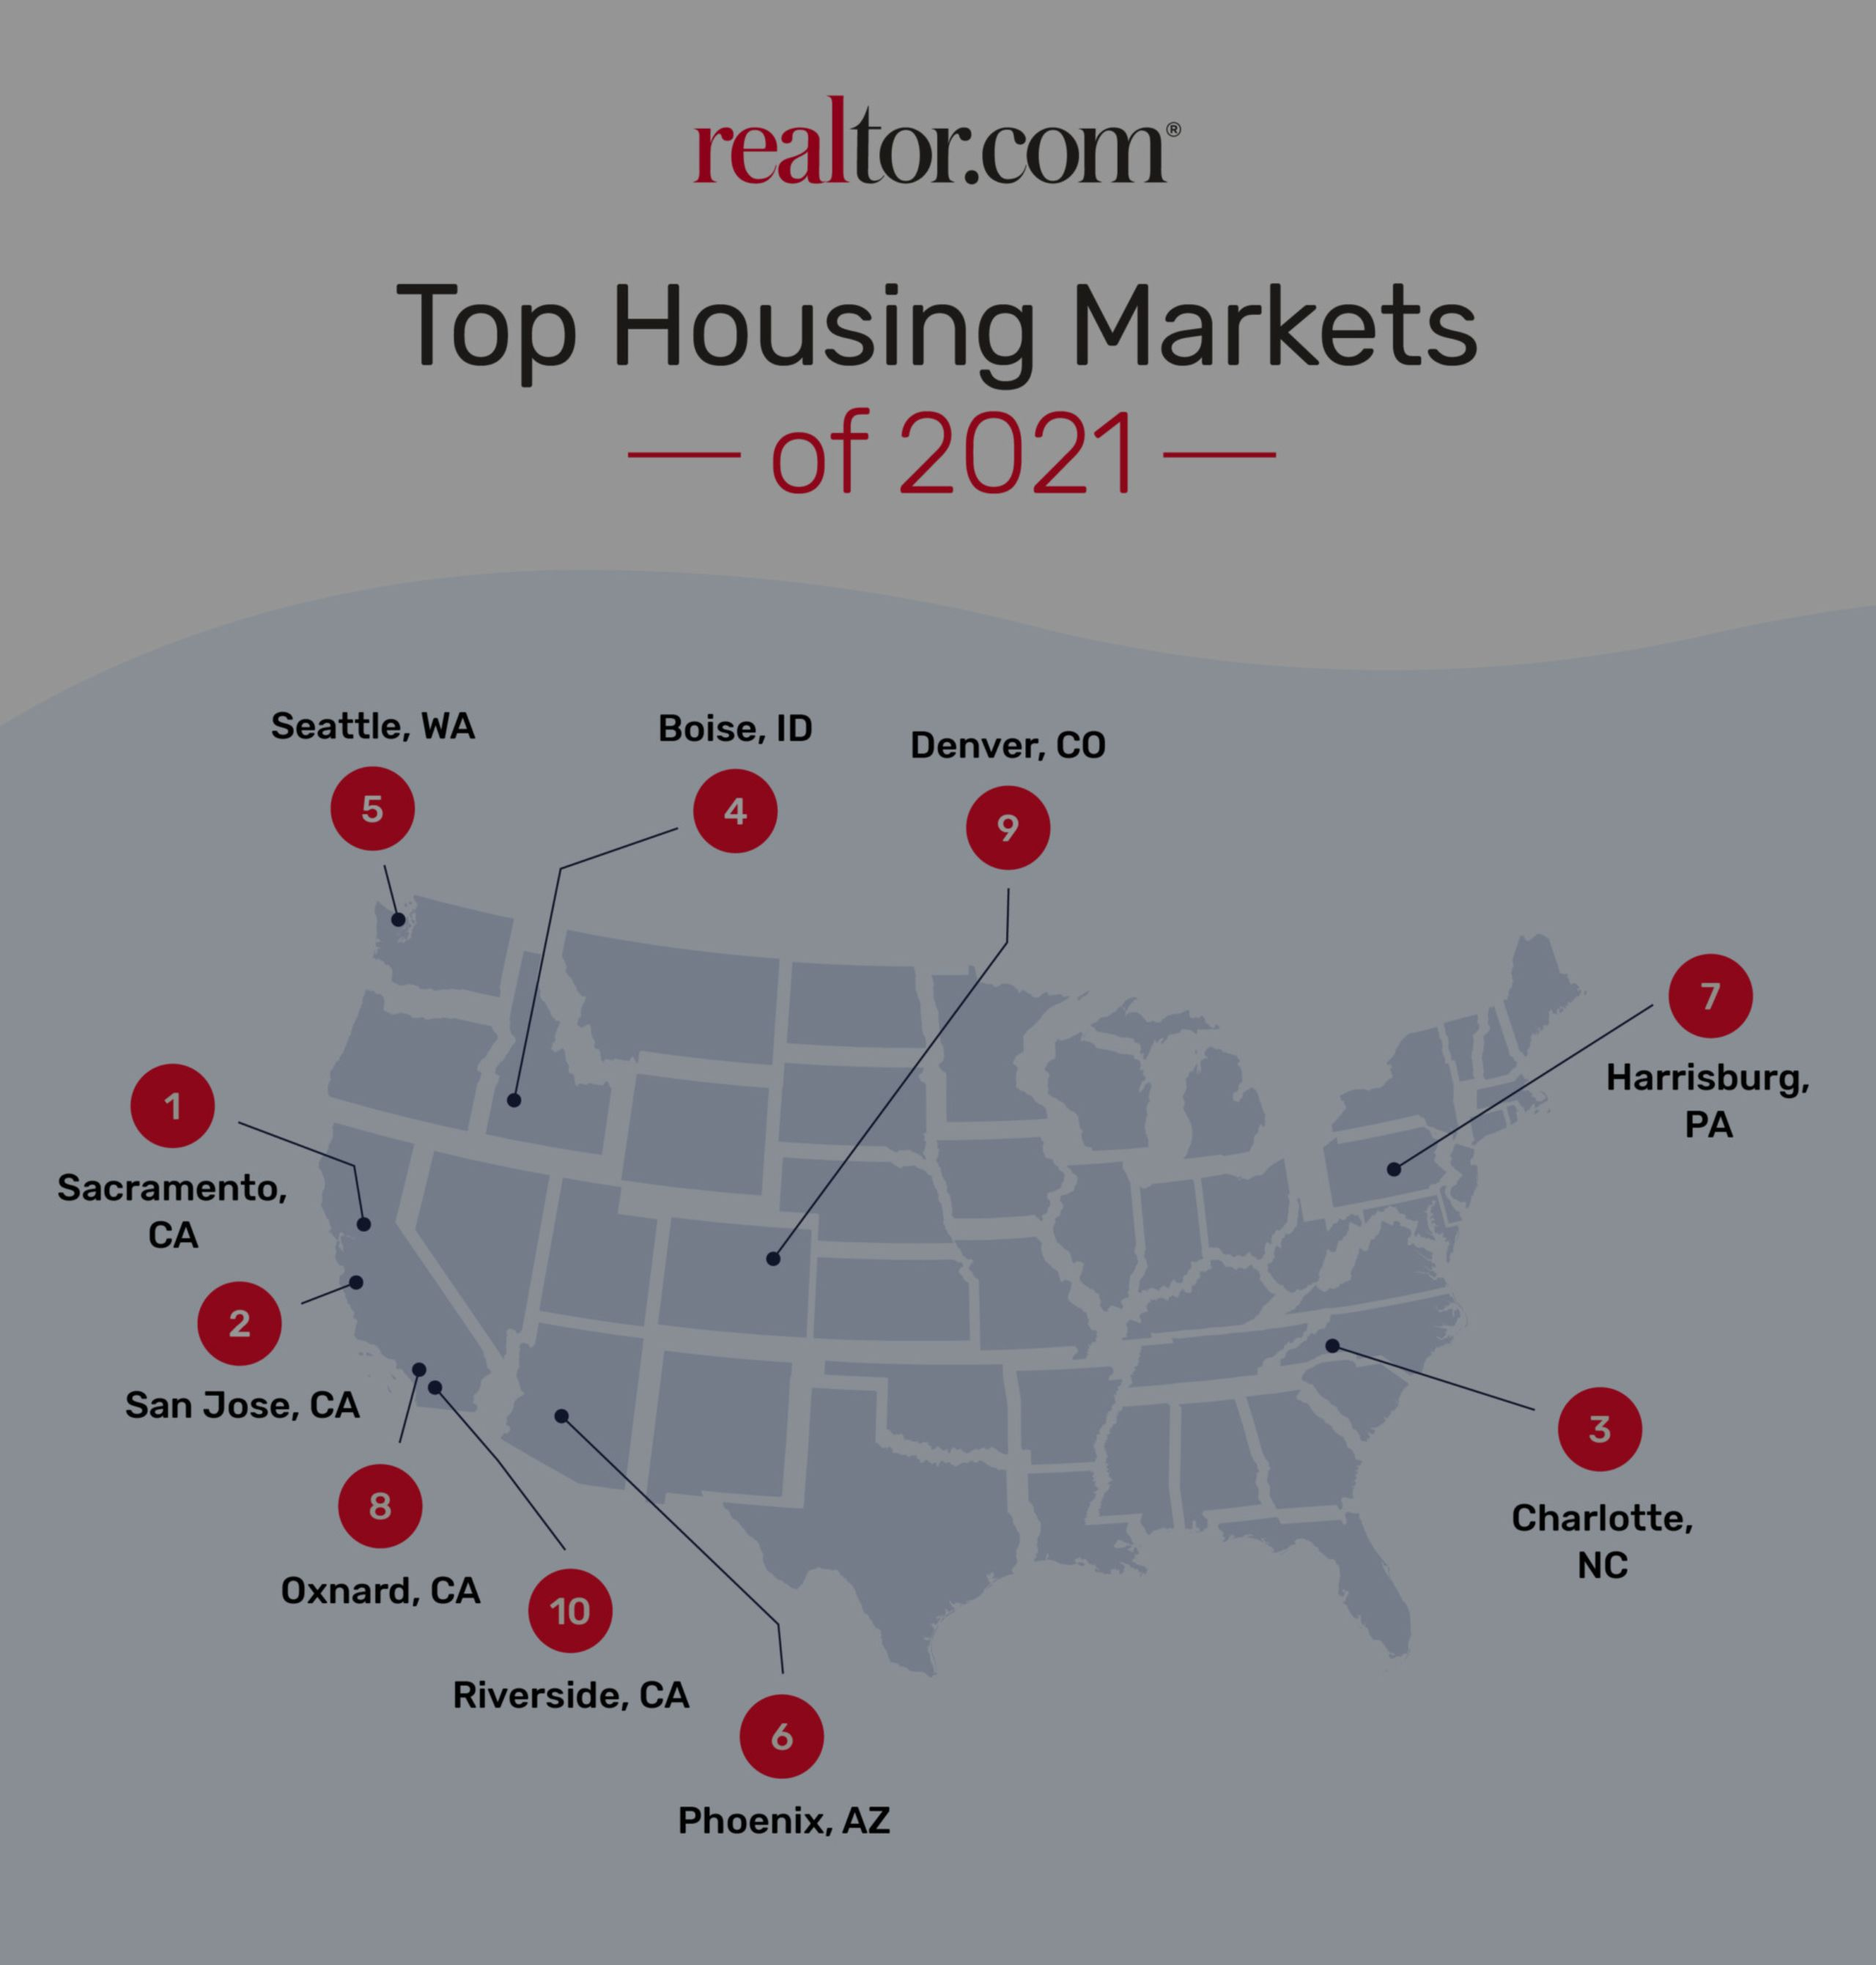 Hot Real Estate Markets Ahead in 2021